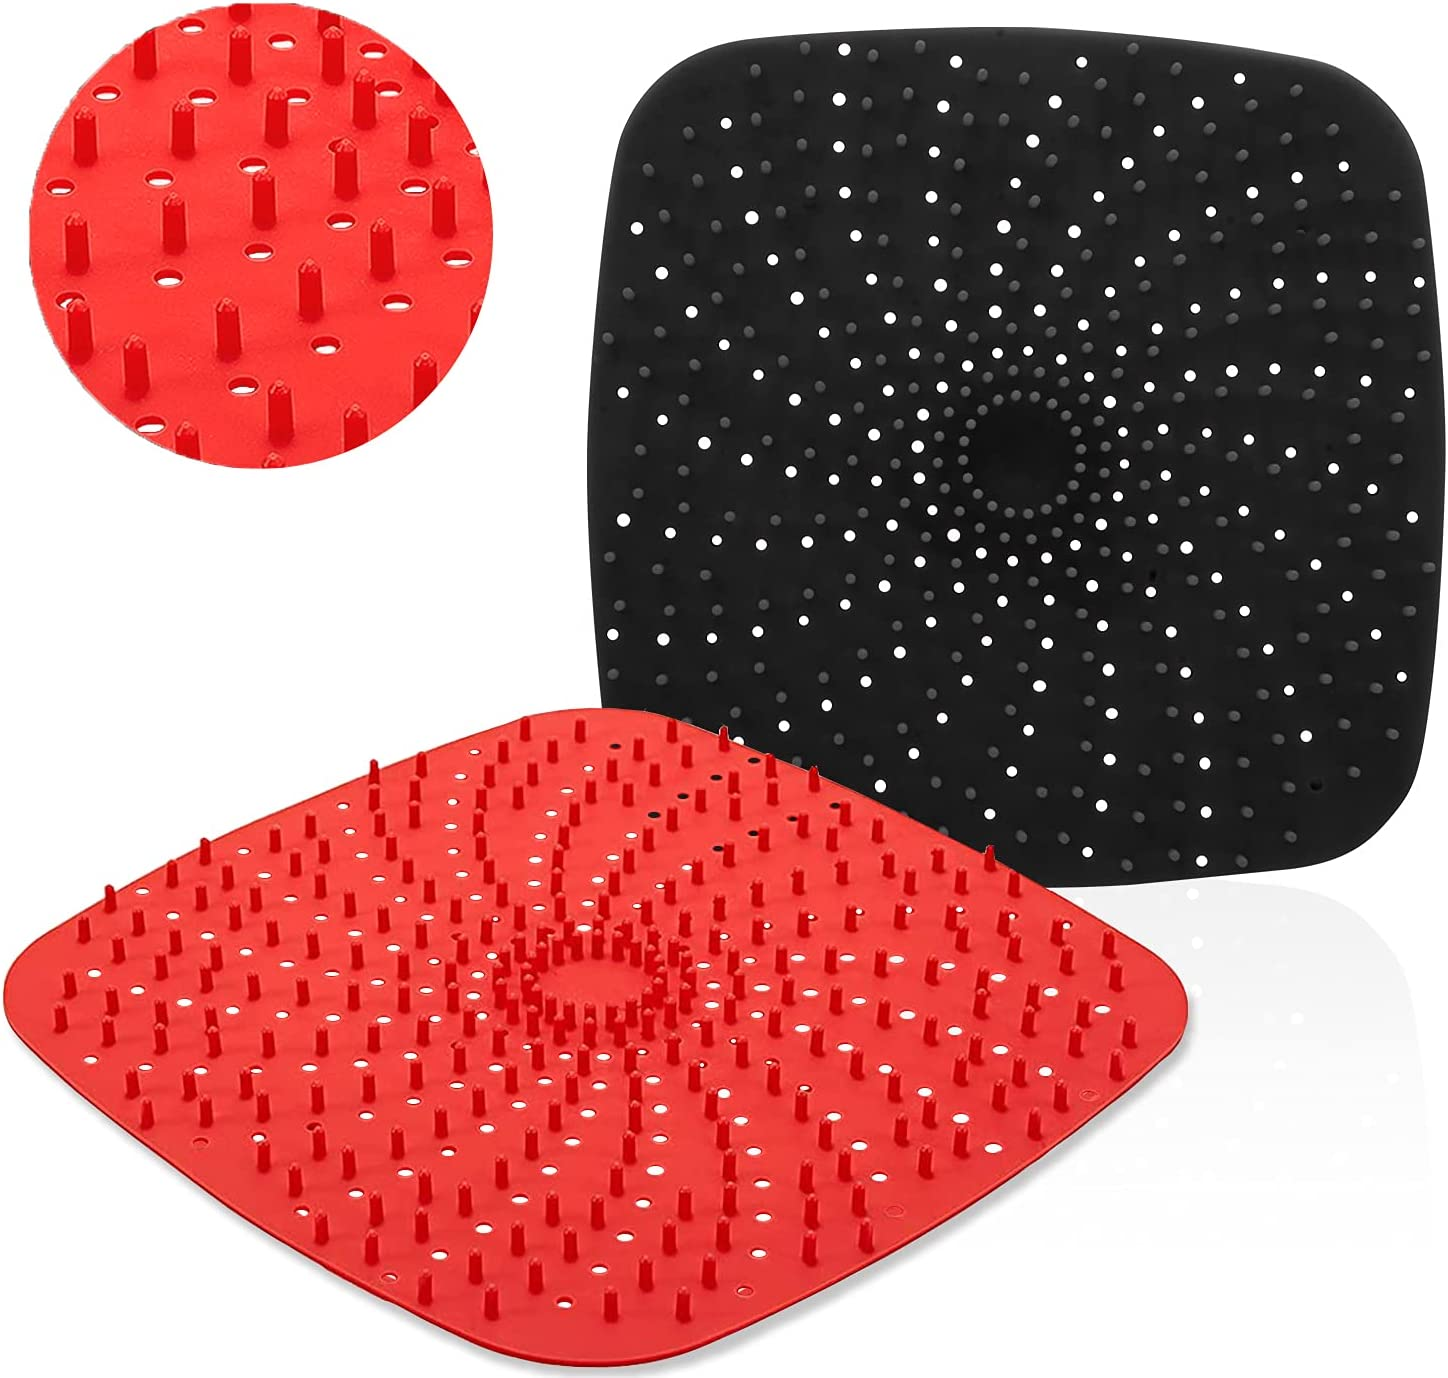 Reusable Air Fryer Liners with Raised Silicone | Patented Product | BPA Free Non-Stick Silicone Air Fryer Mats | Air Fryer Silicone Tray Accessories | 2 Size Options – 8 Inch Square